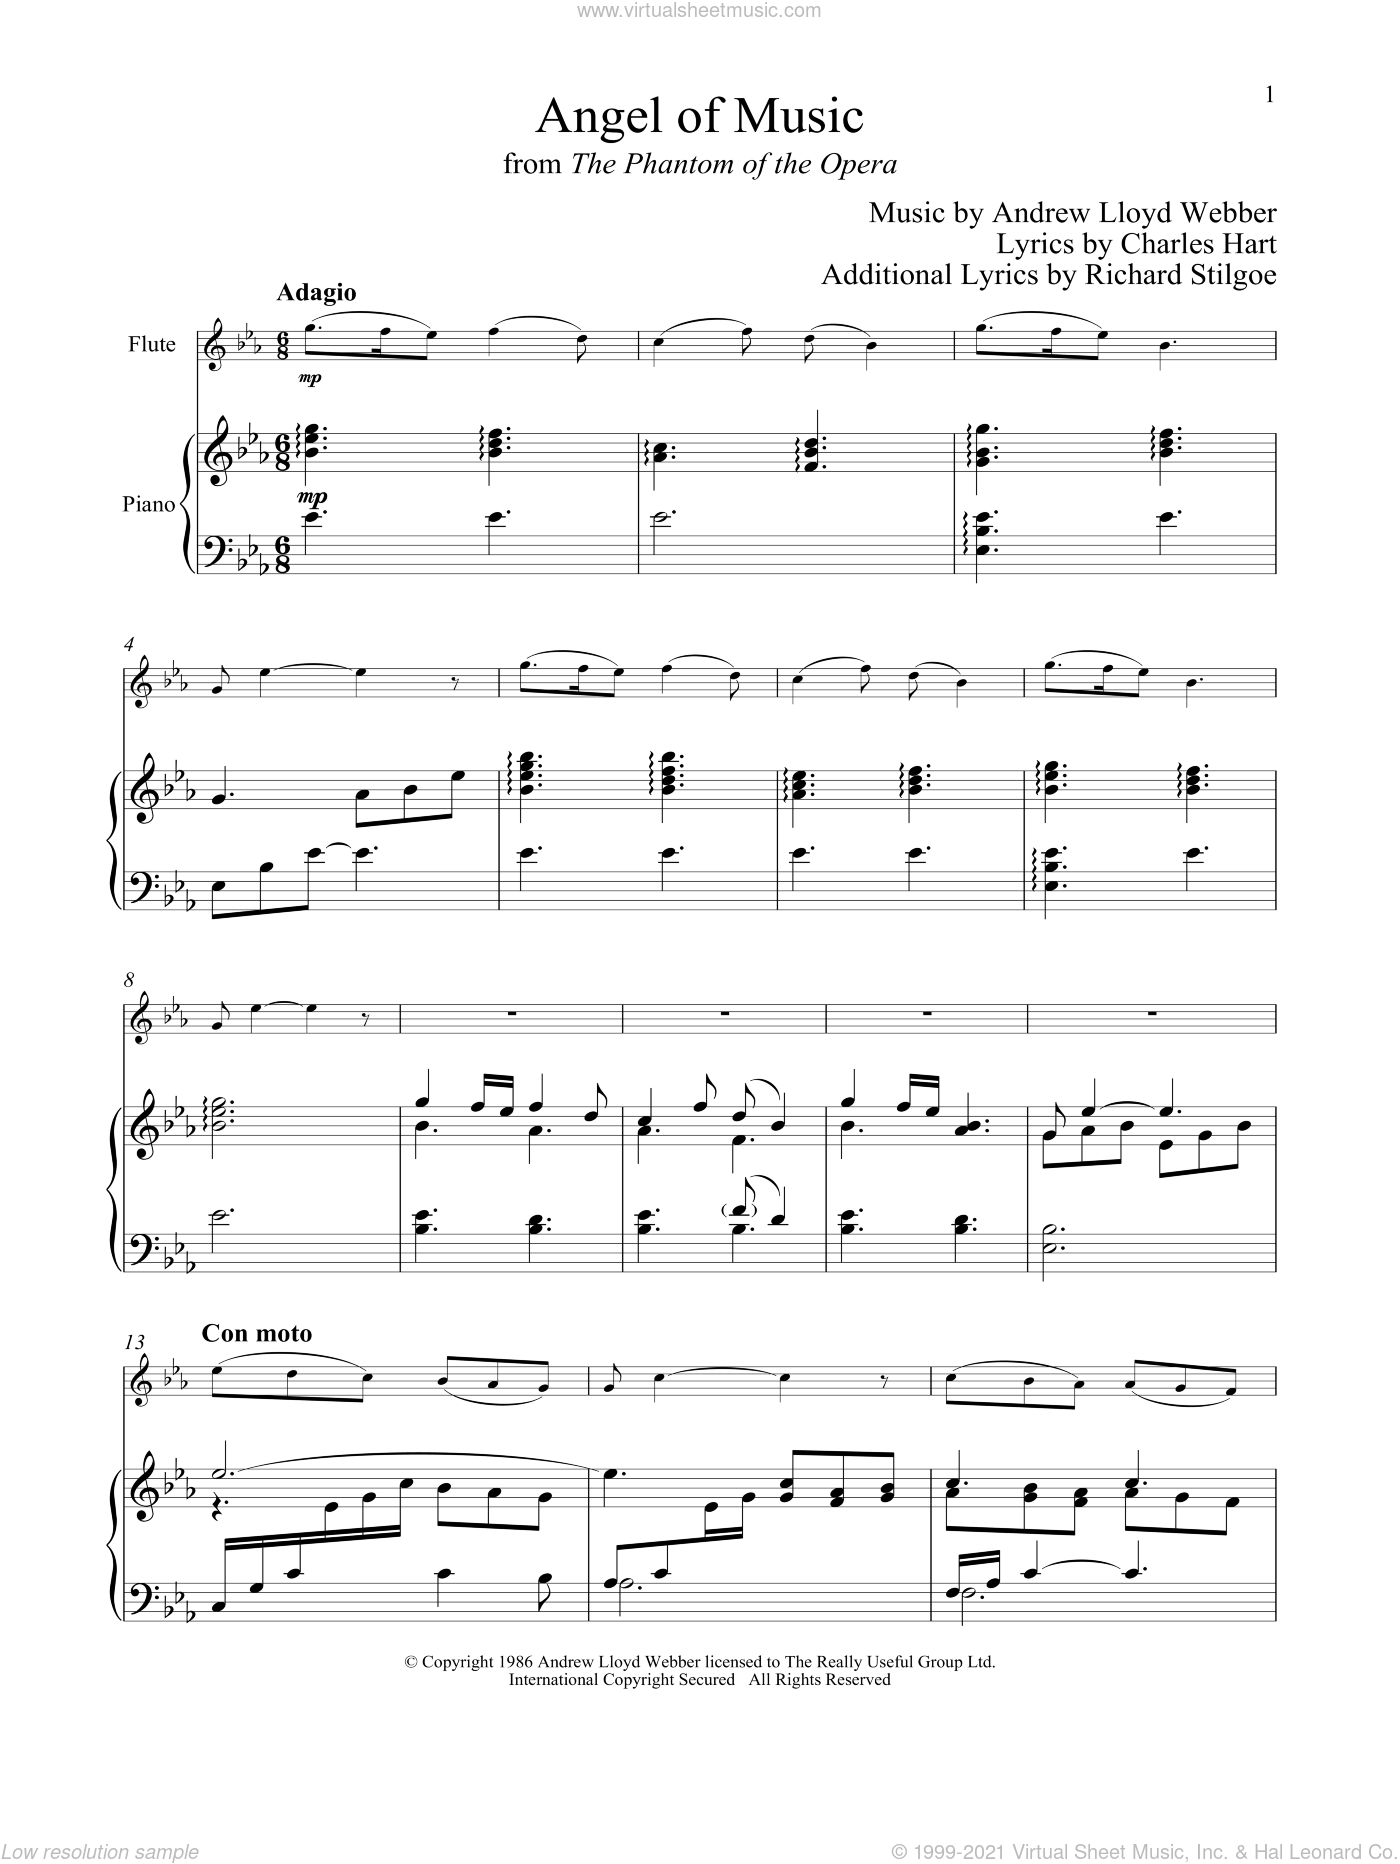 Angel Of Music (from The Phantom of The Opera) sheet music for flute and piano by Andrew Lloyd Webber, Charles Hart and Richard Stilgoe, intermediate skill level